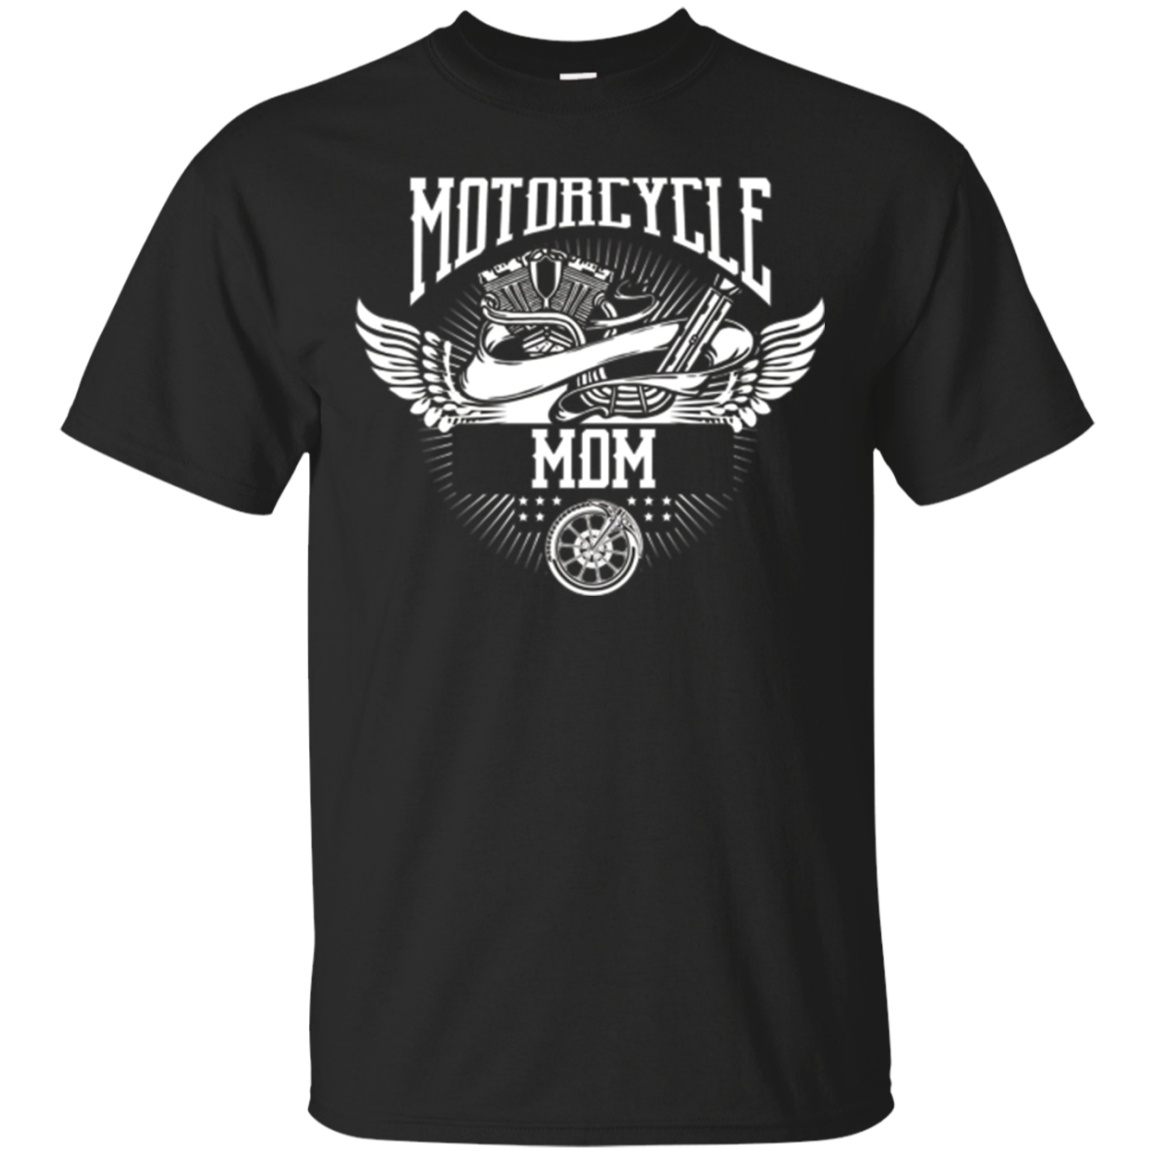 Motorcycle Mom Biker T-shirt